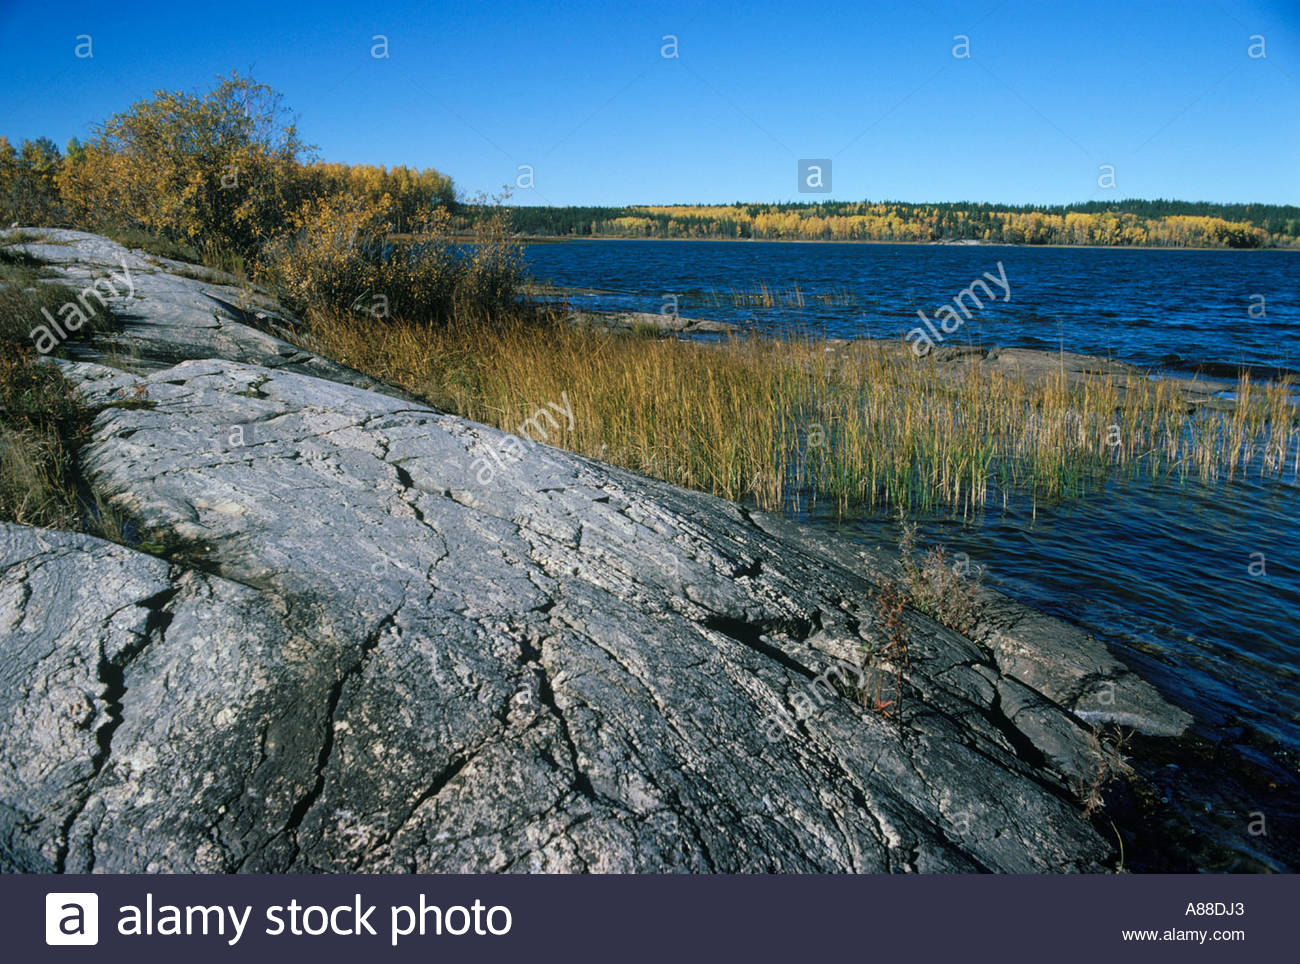 Precambrian Stock Photos Amp Precambrian Stock Images Alamy